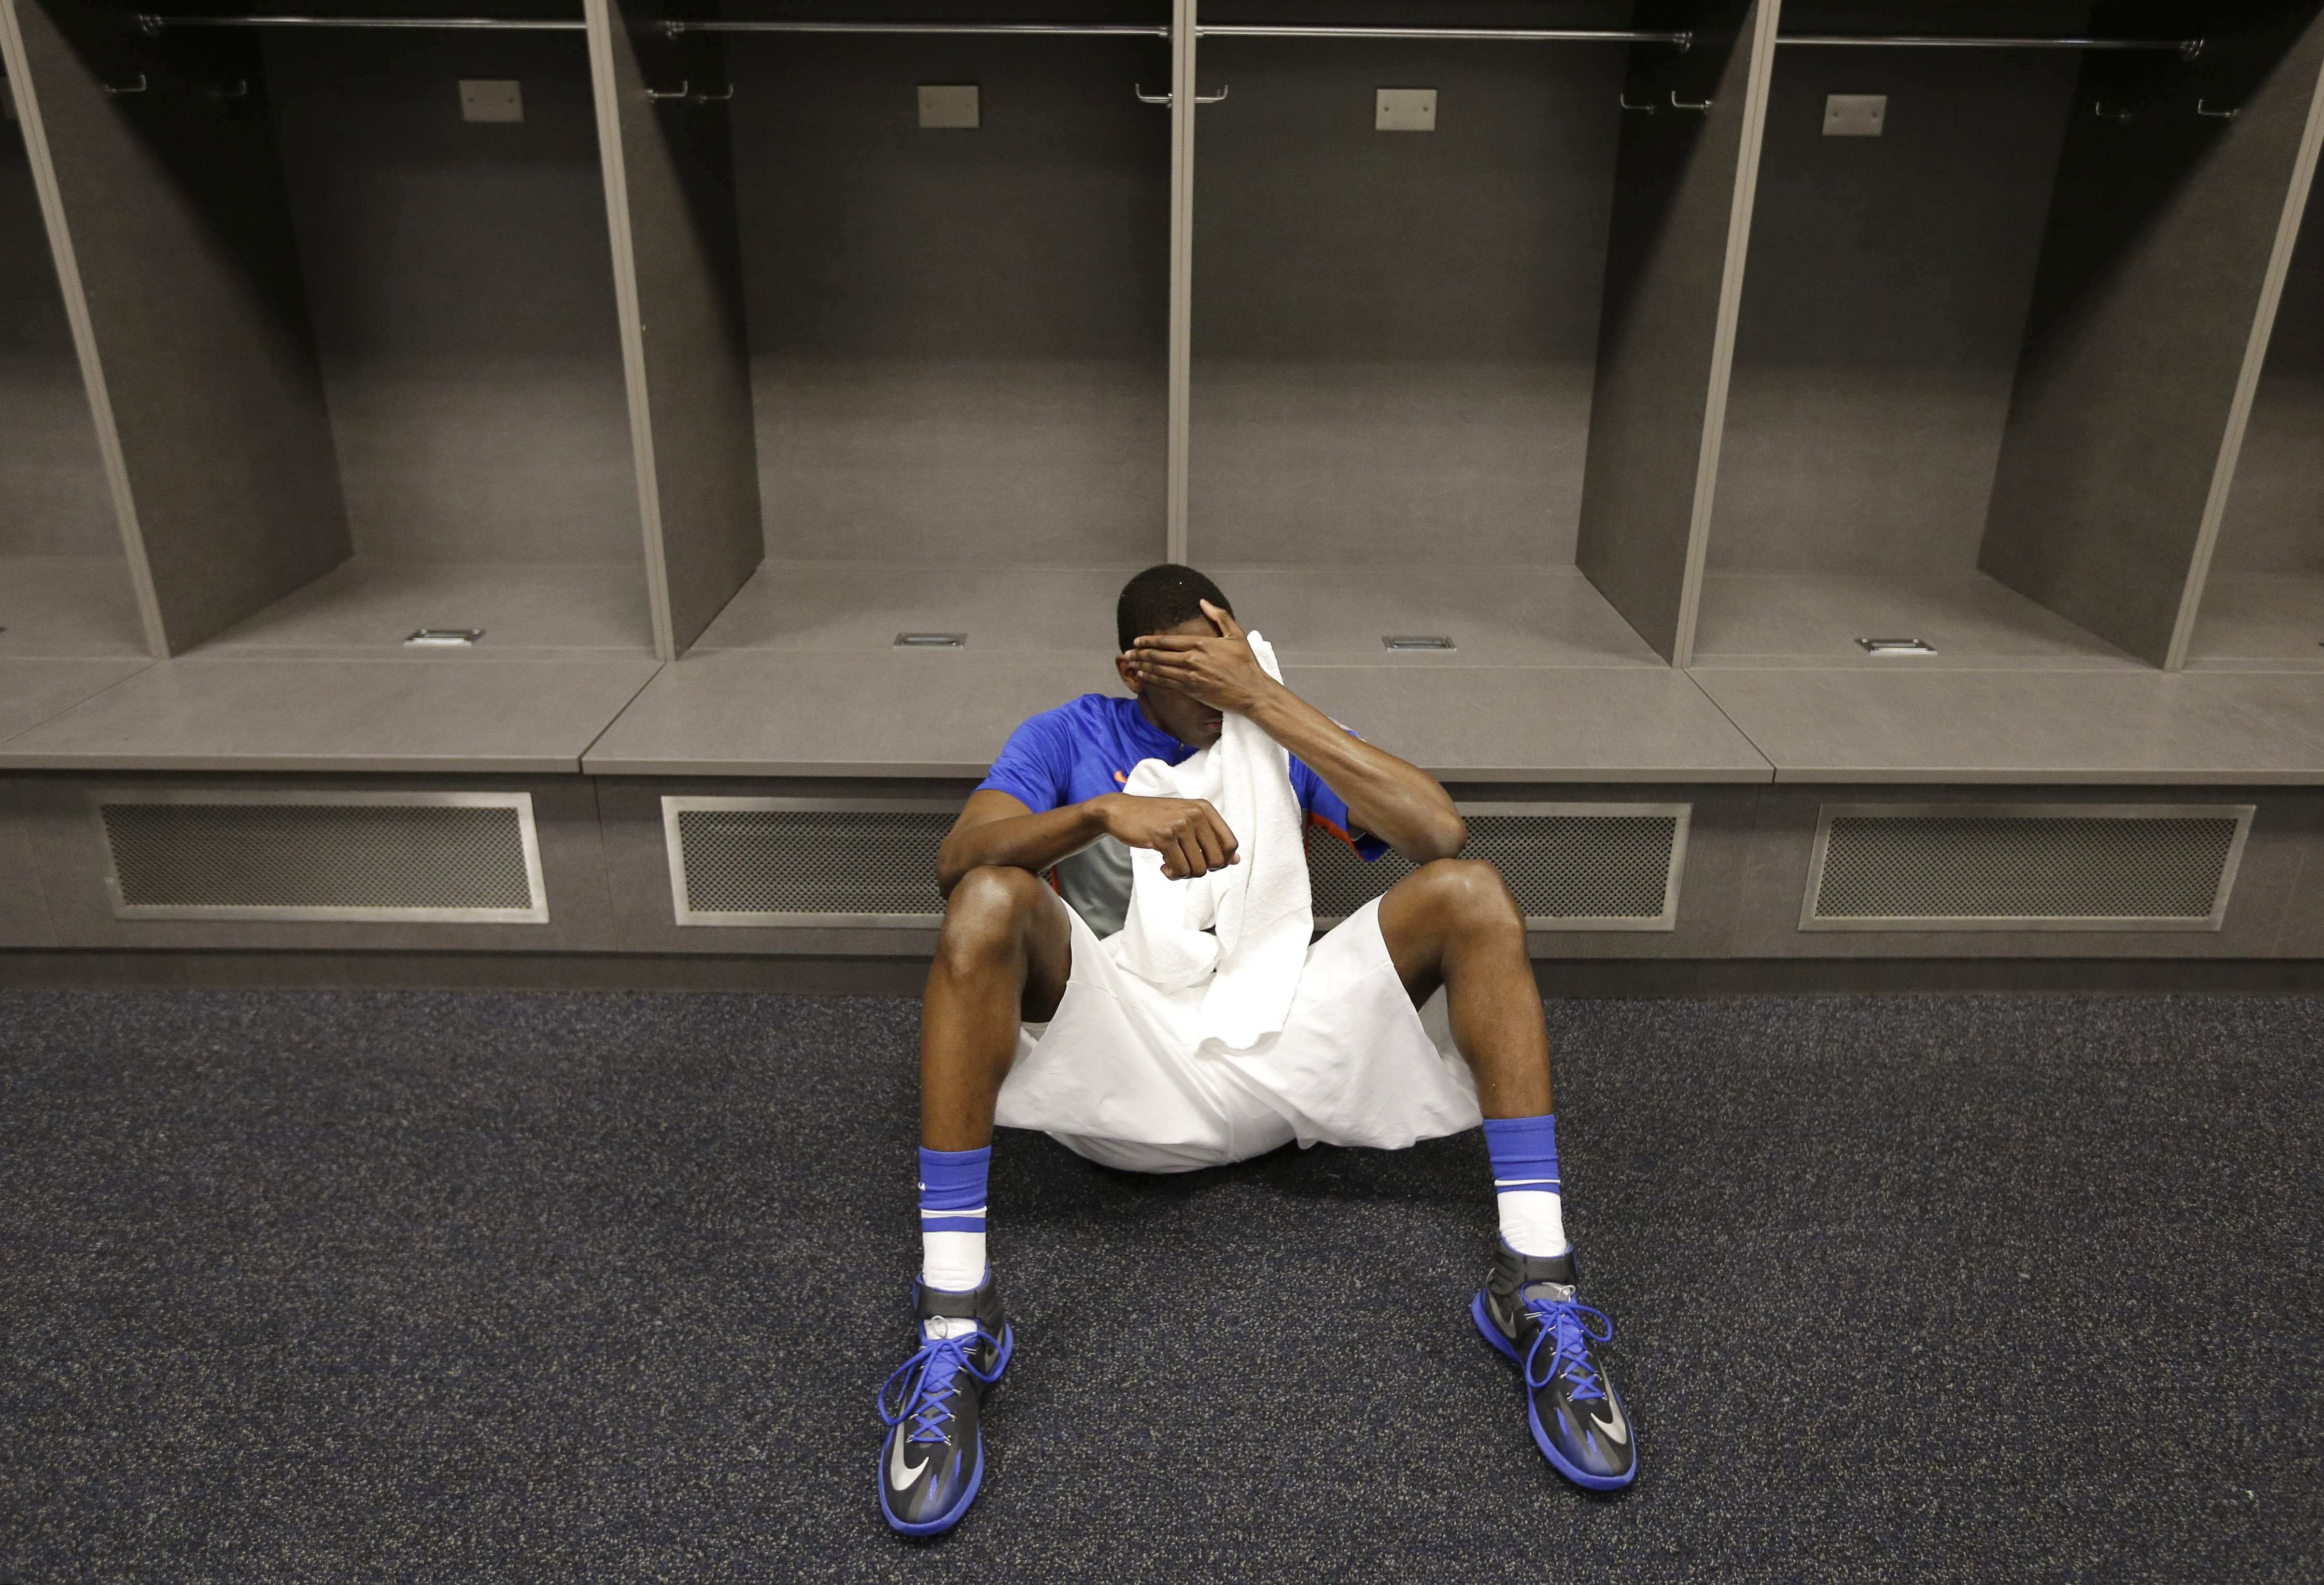 Florida forward Dorian Finney-Smith rests on the floor of the locker room after losing to Connecticut in the NCAA Tournament Final Four, April 5, 2014, in Arlington, Texas.  Connecticut won 63-53.